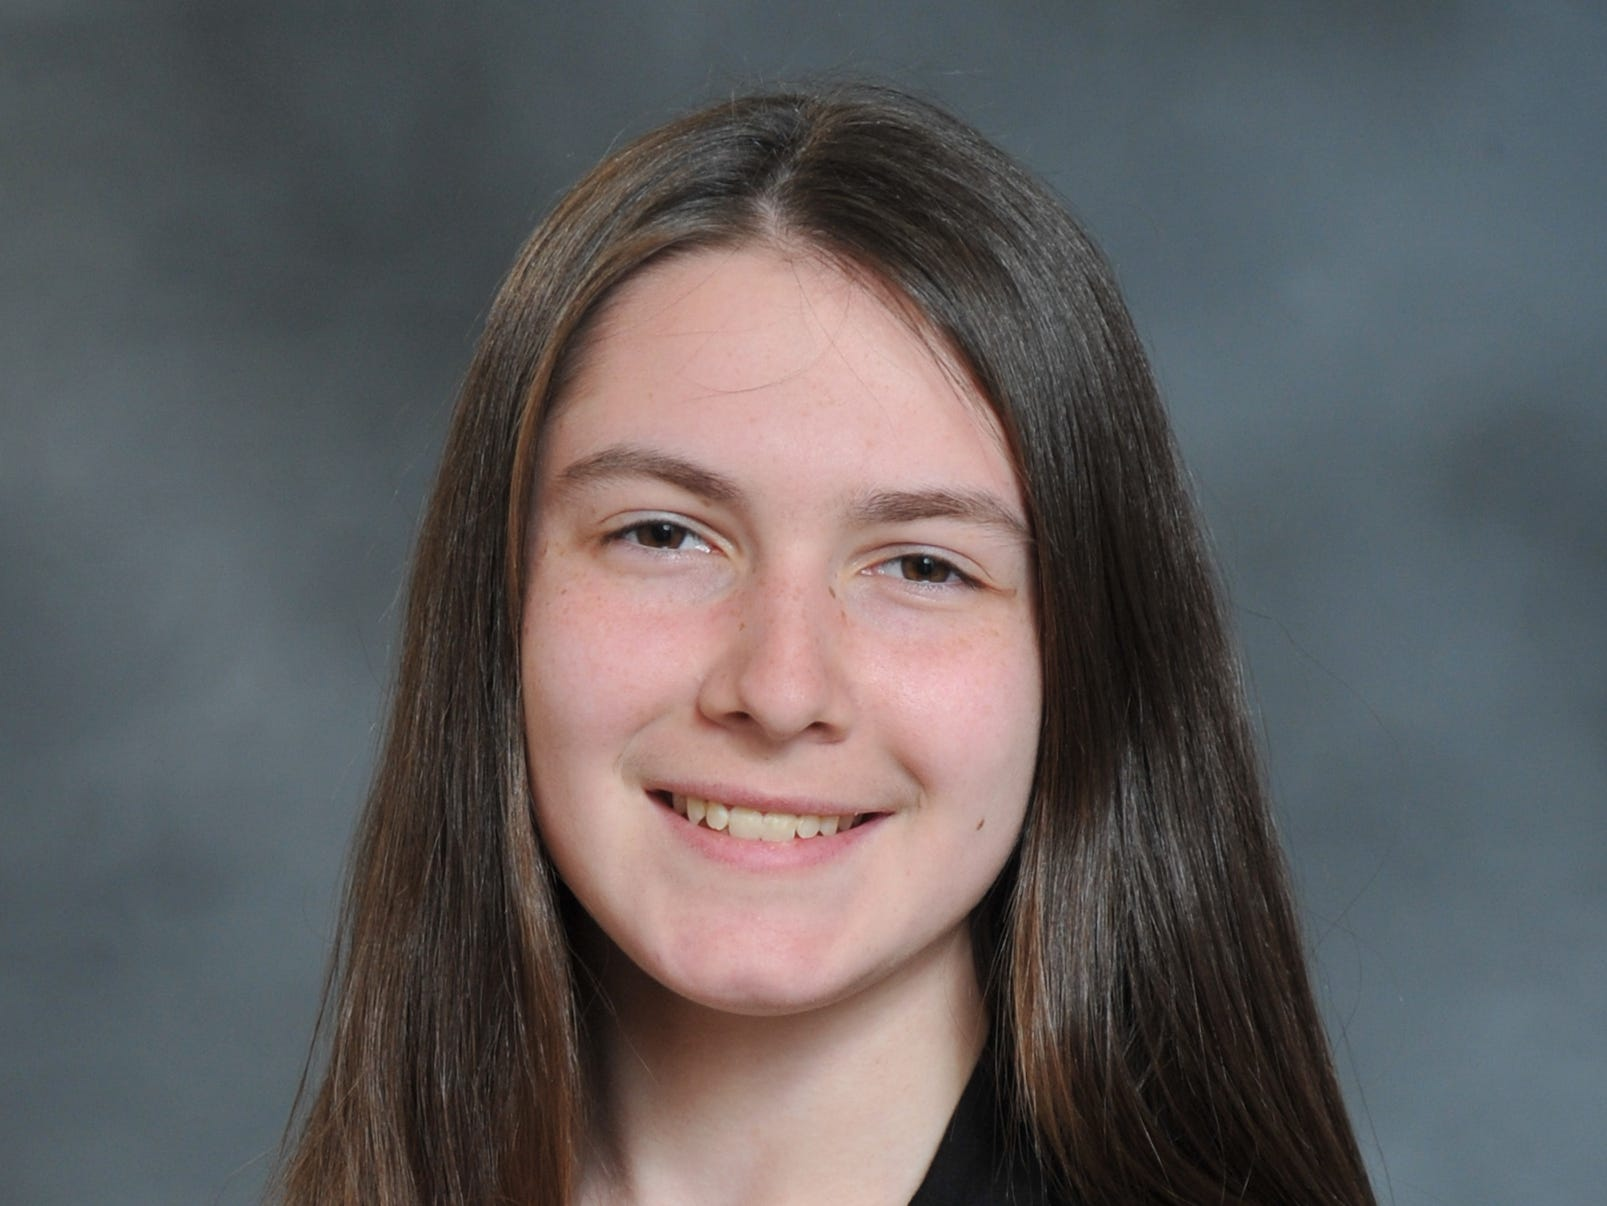 Emma Hynson, South Western High School, Distinguished Young Women of York County participant.